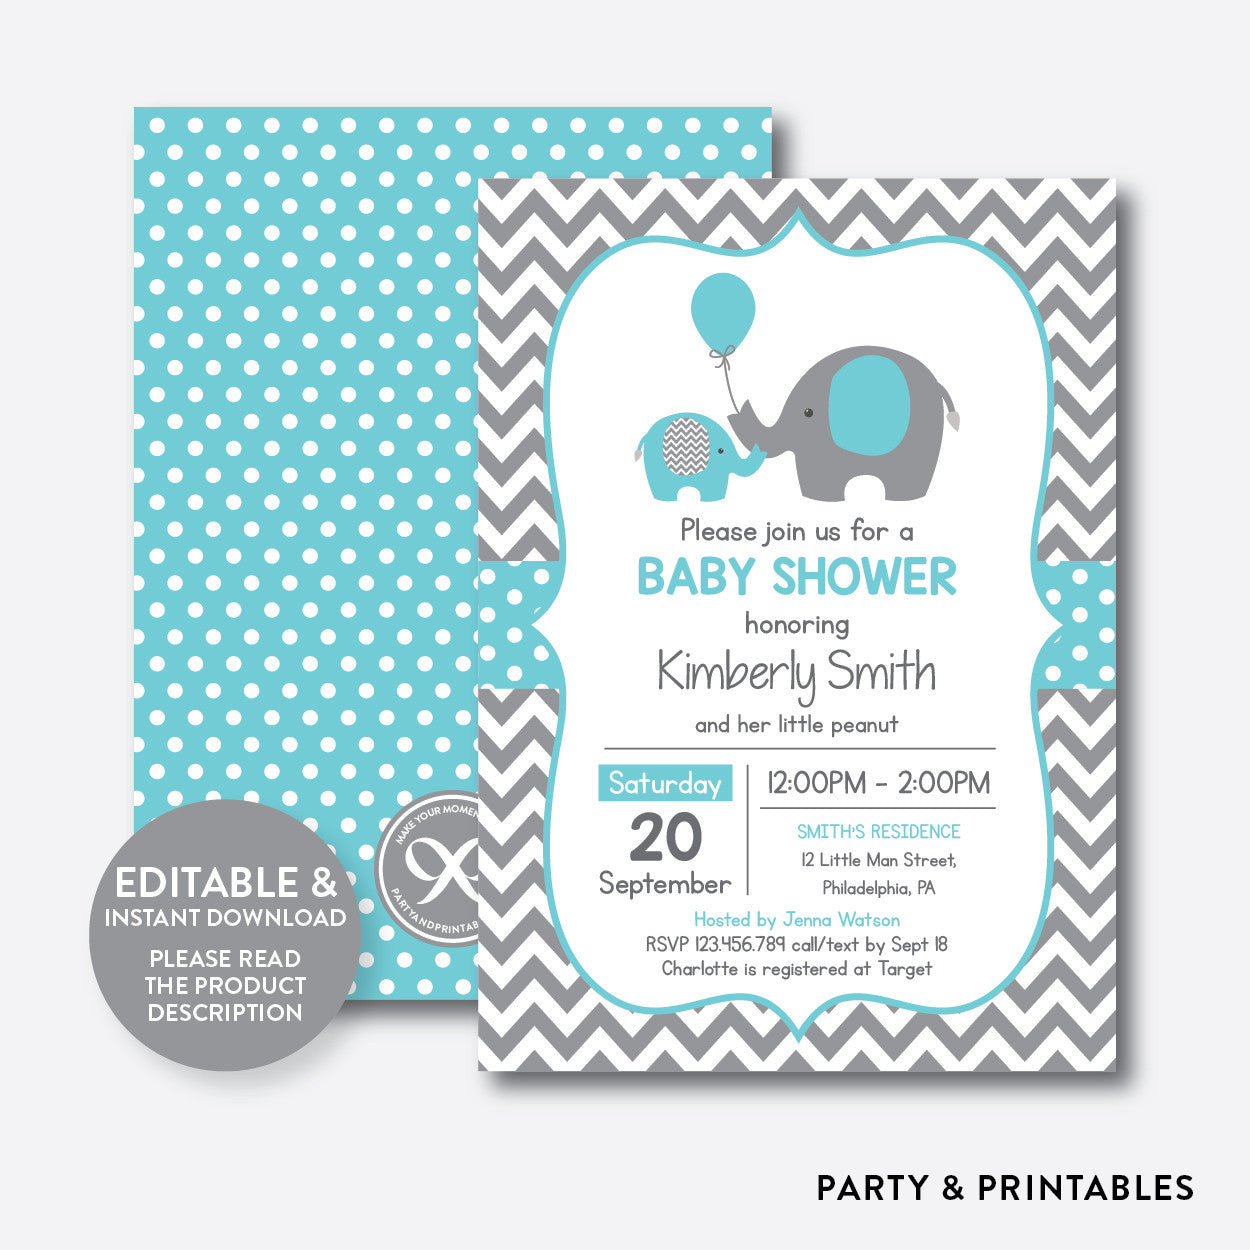 Elephant Baby Shower Invitation / Editable / Instant Download (SBS.42), invitation - Party and Printables